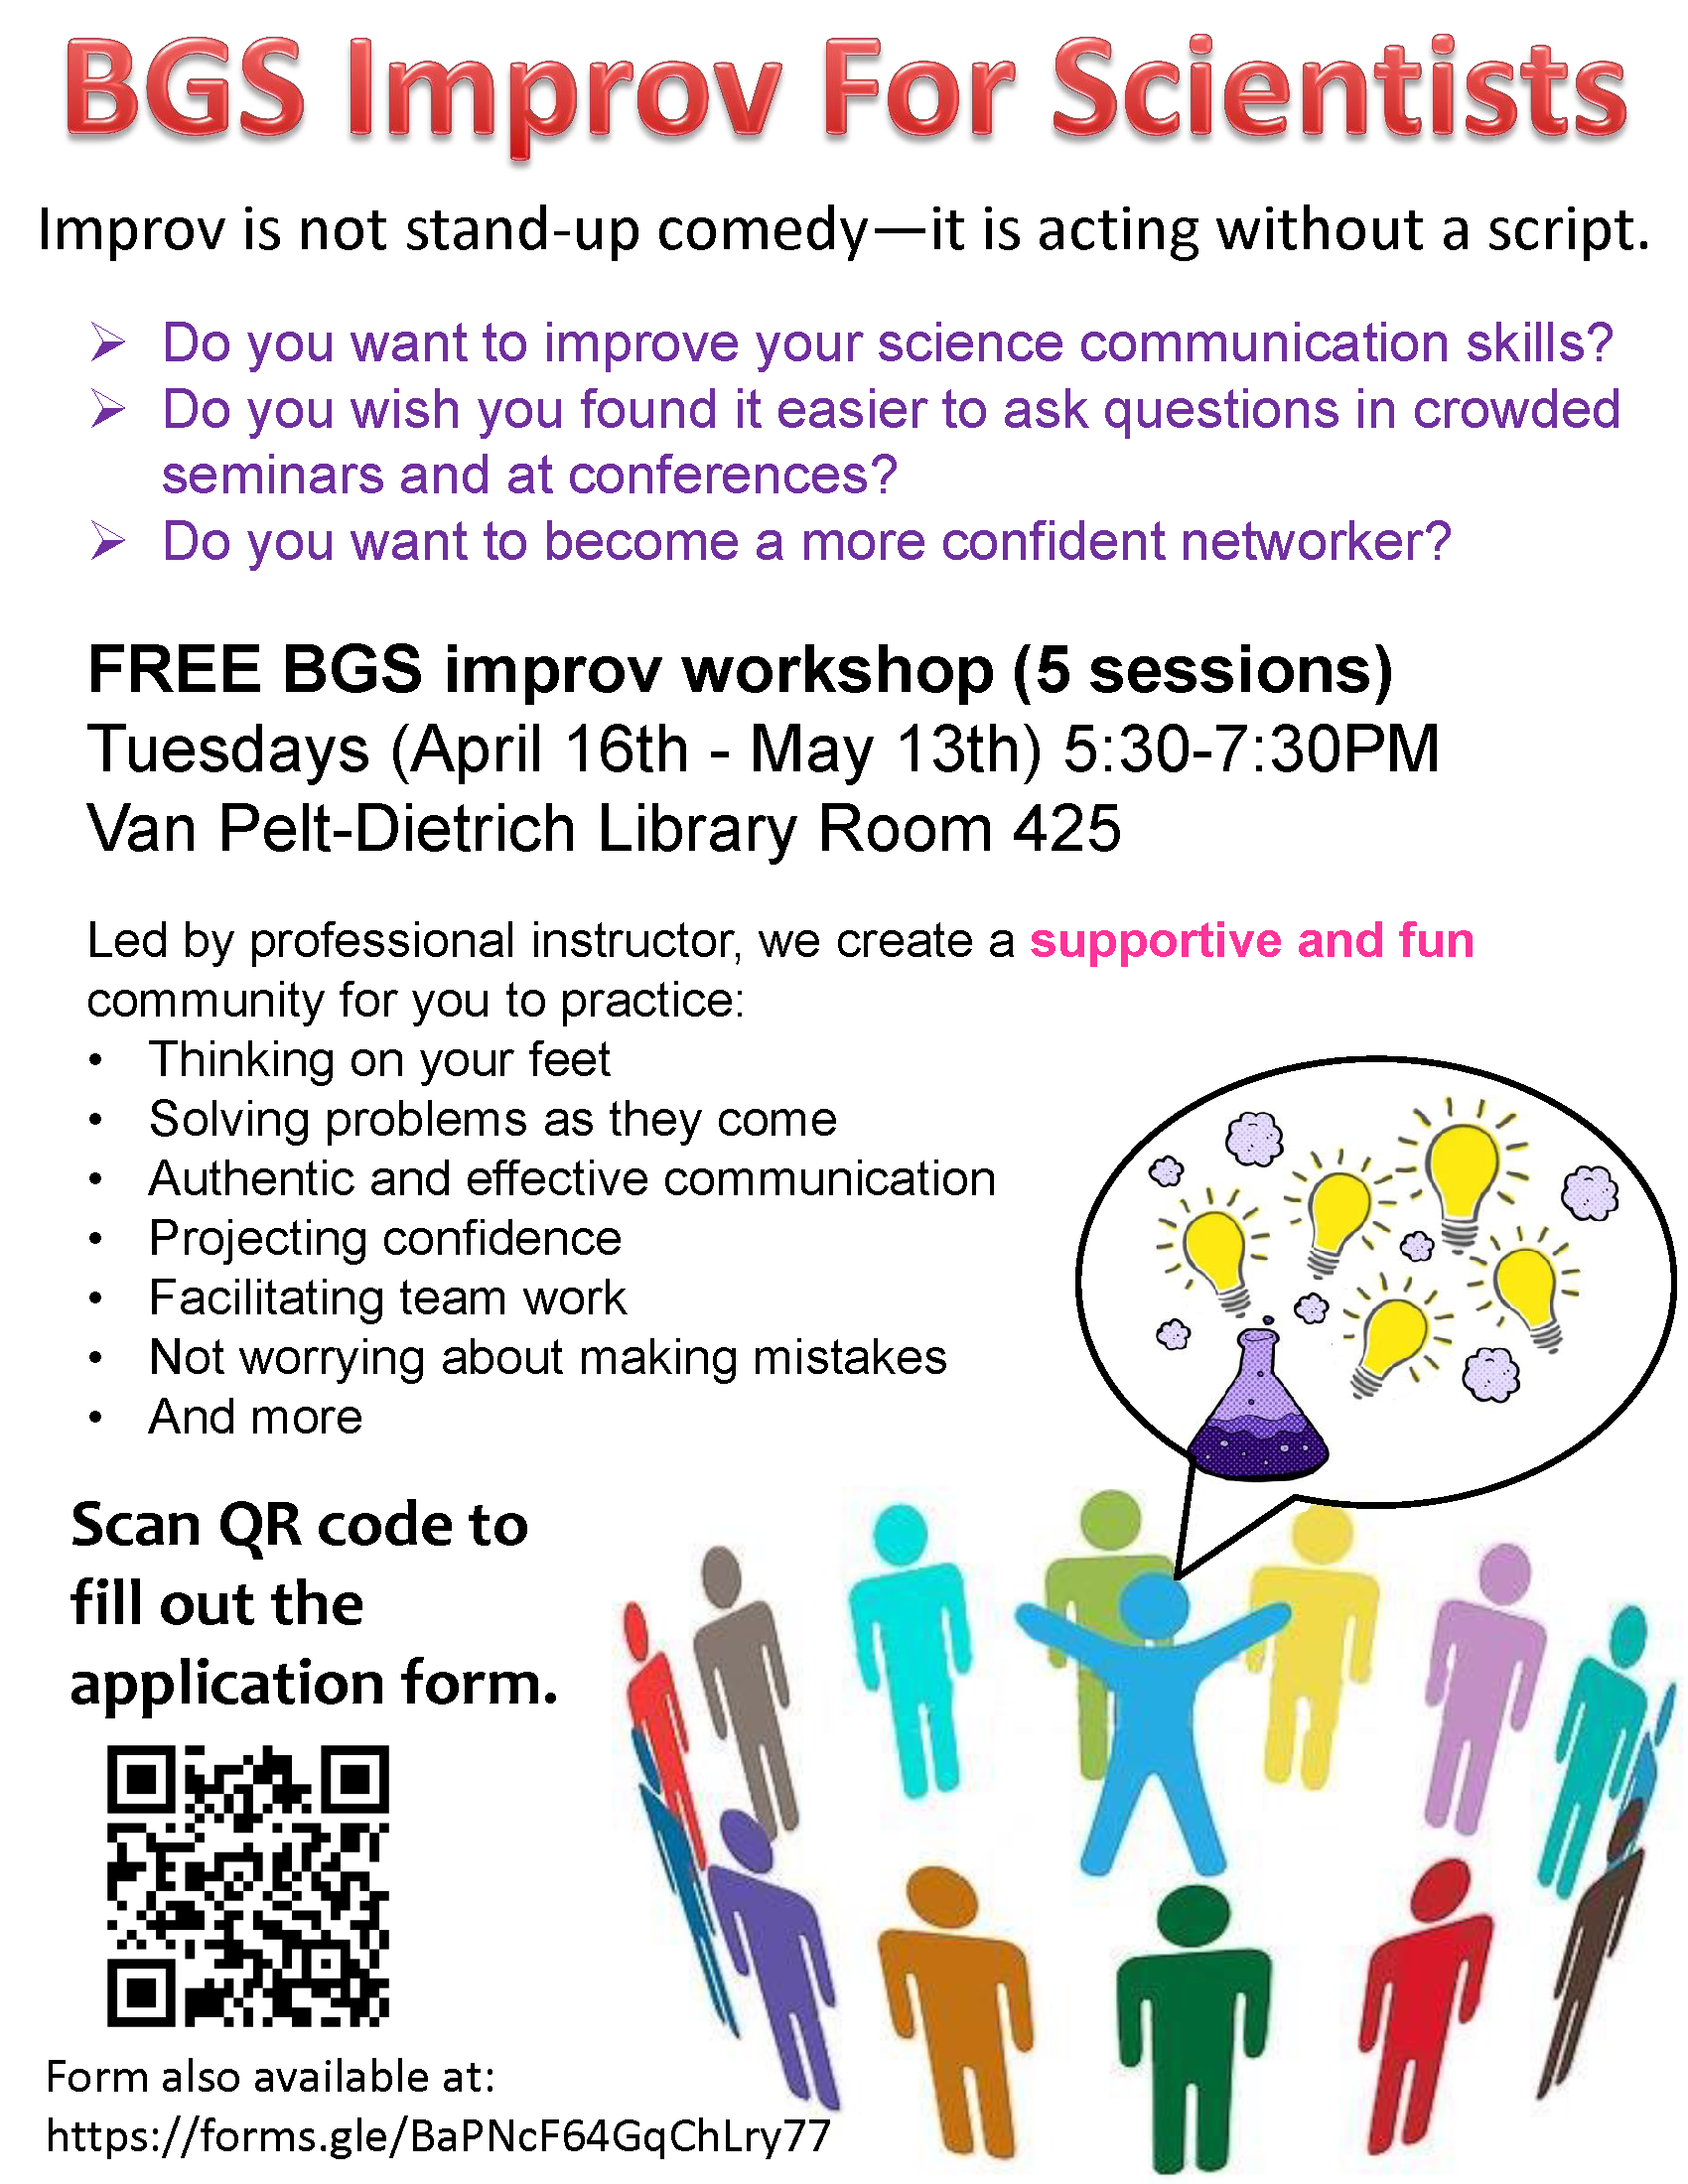 BGS Improv Workshop Series - BGS Career Development